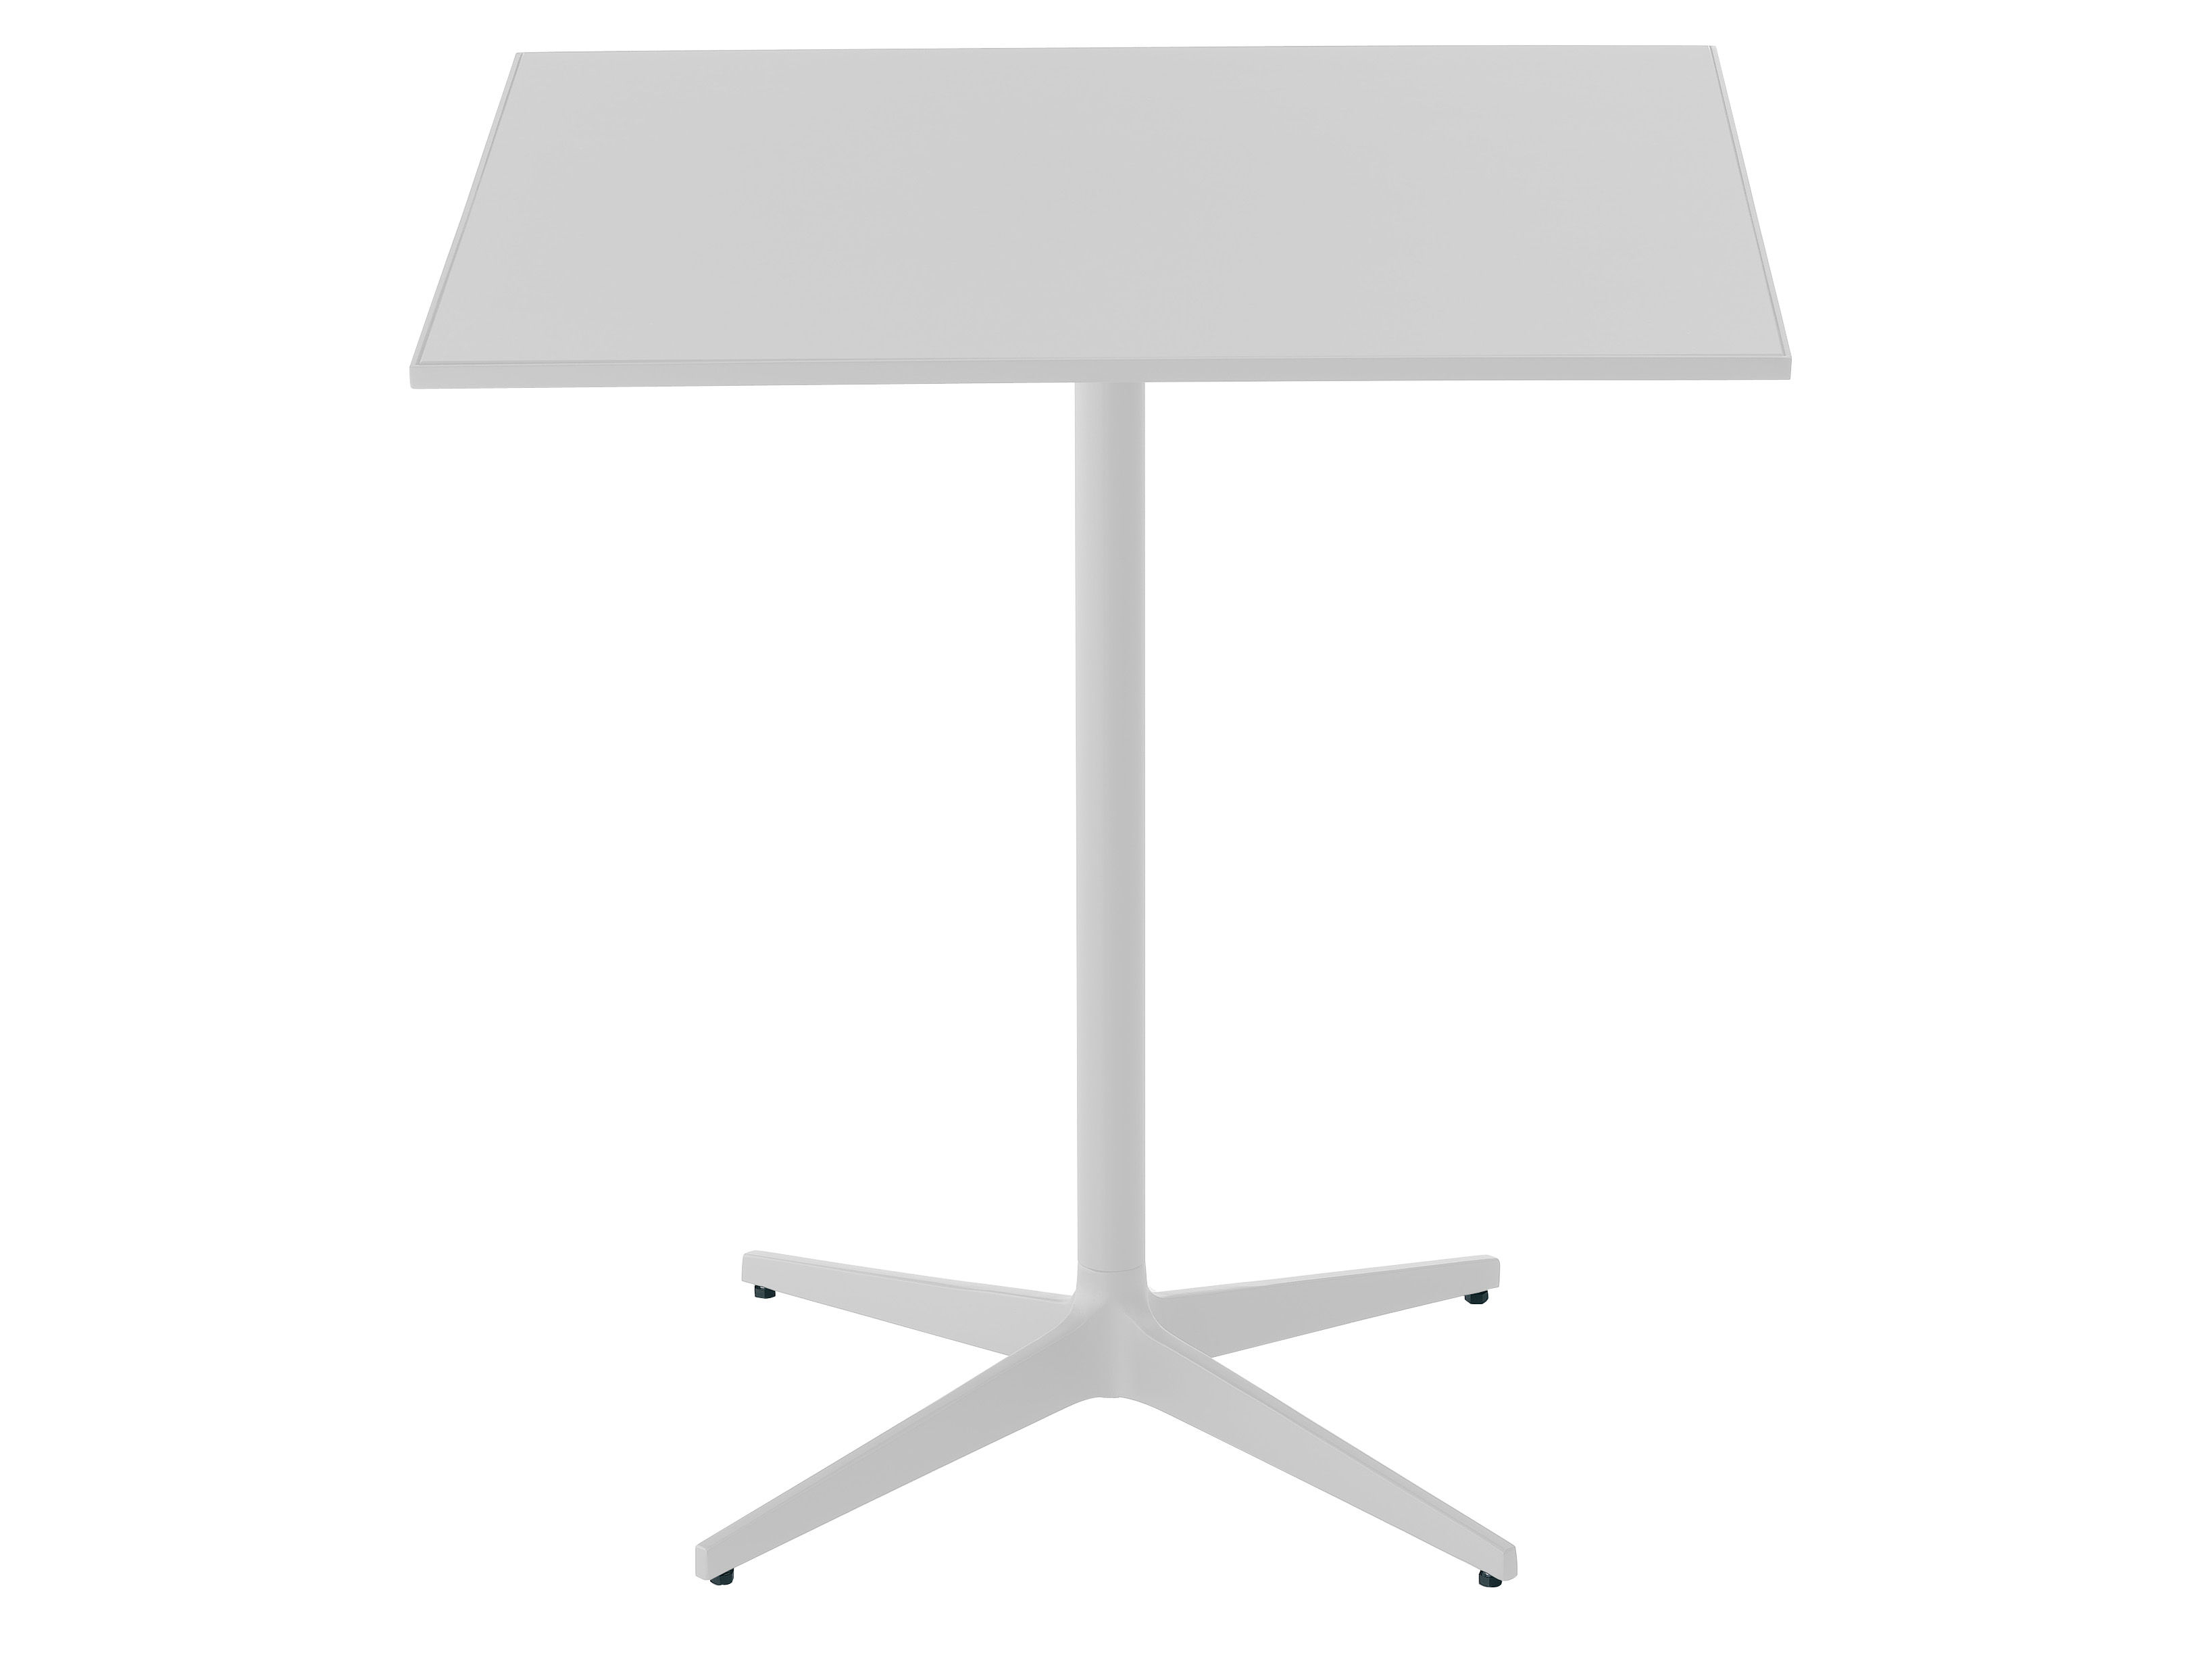 Furniture - Dining Tables - T Table by MDF Italia - White - Lacquered steel, Resin